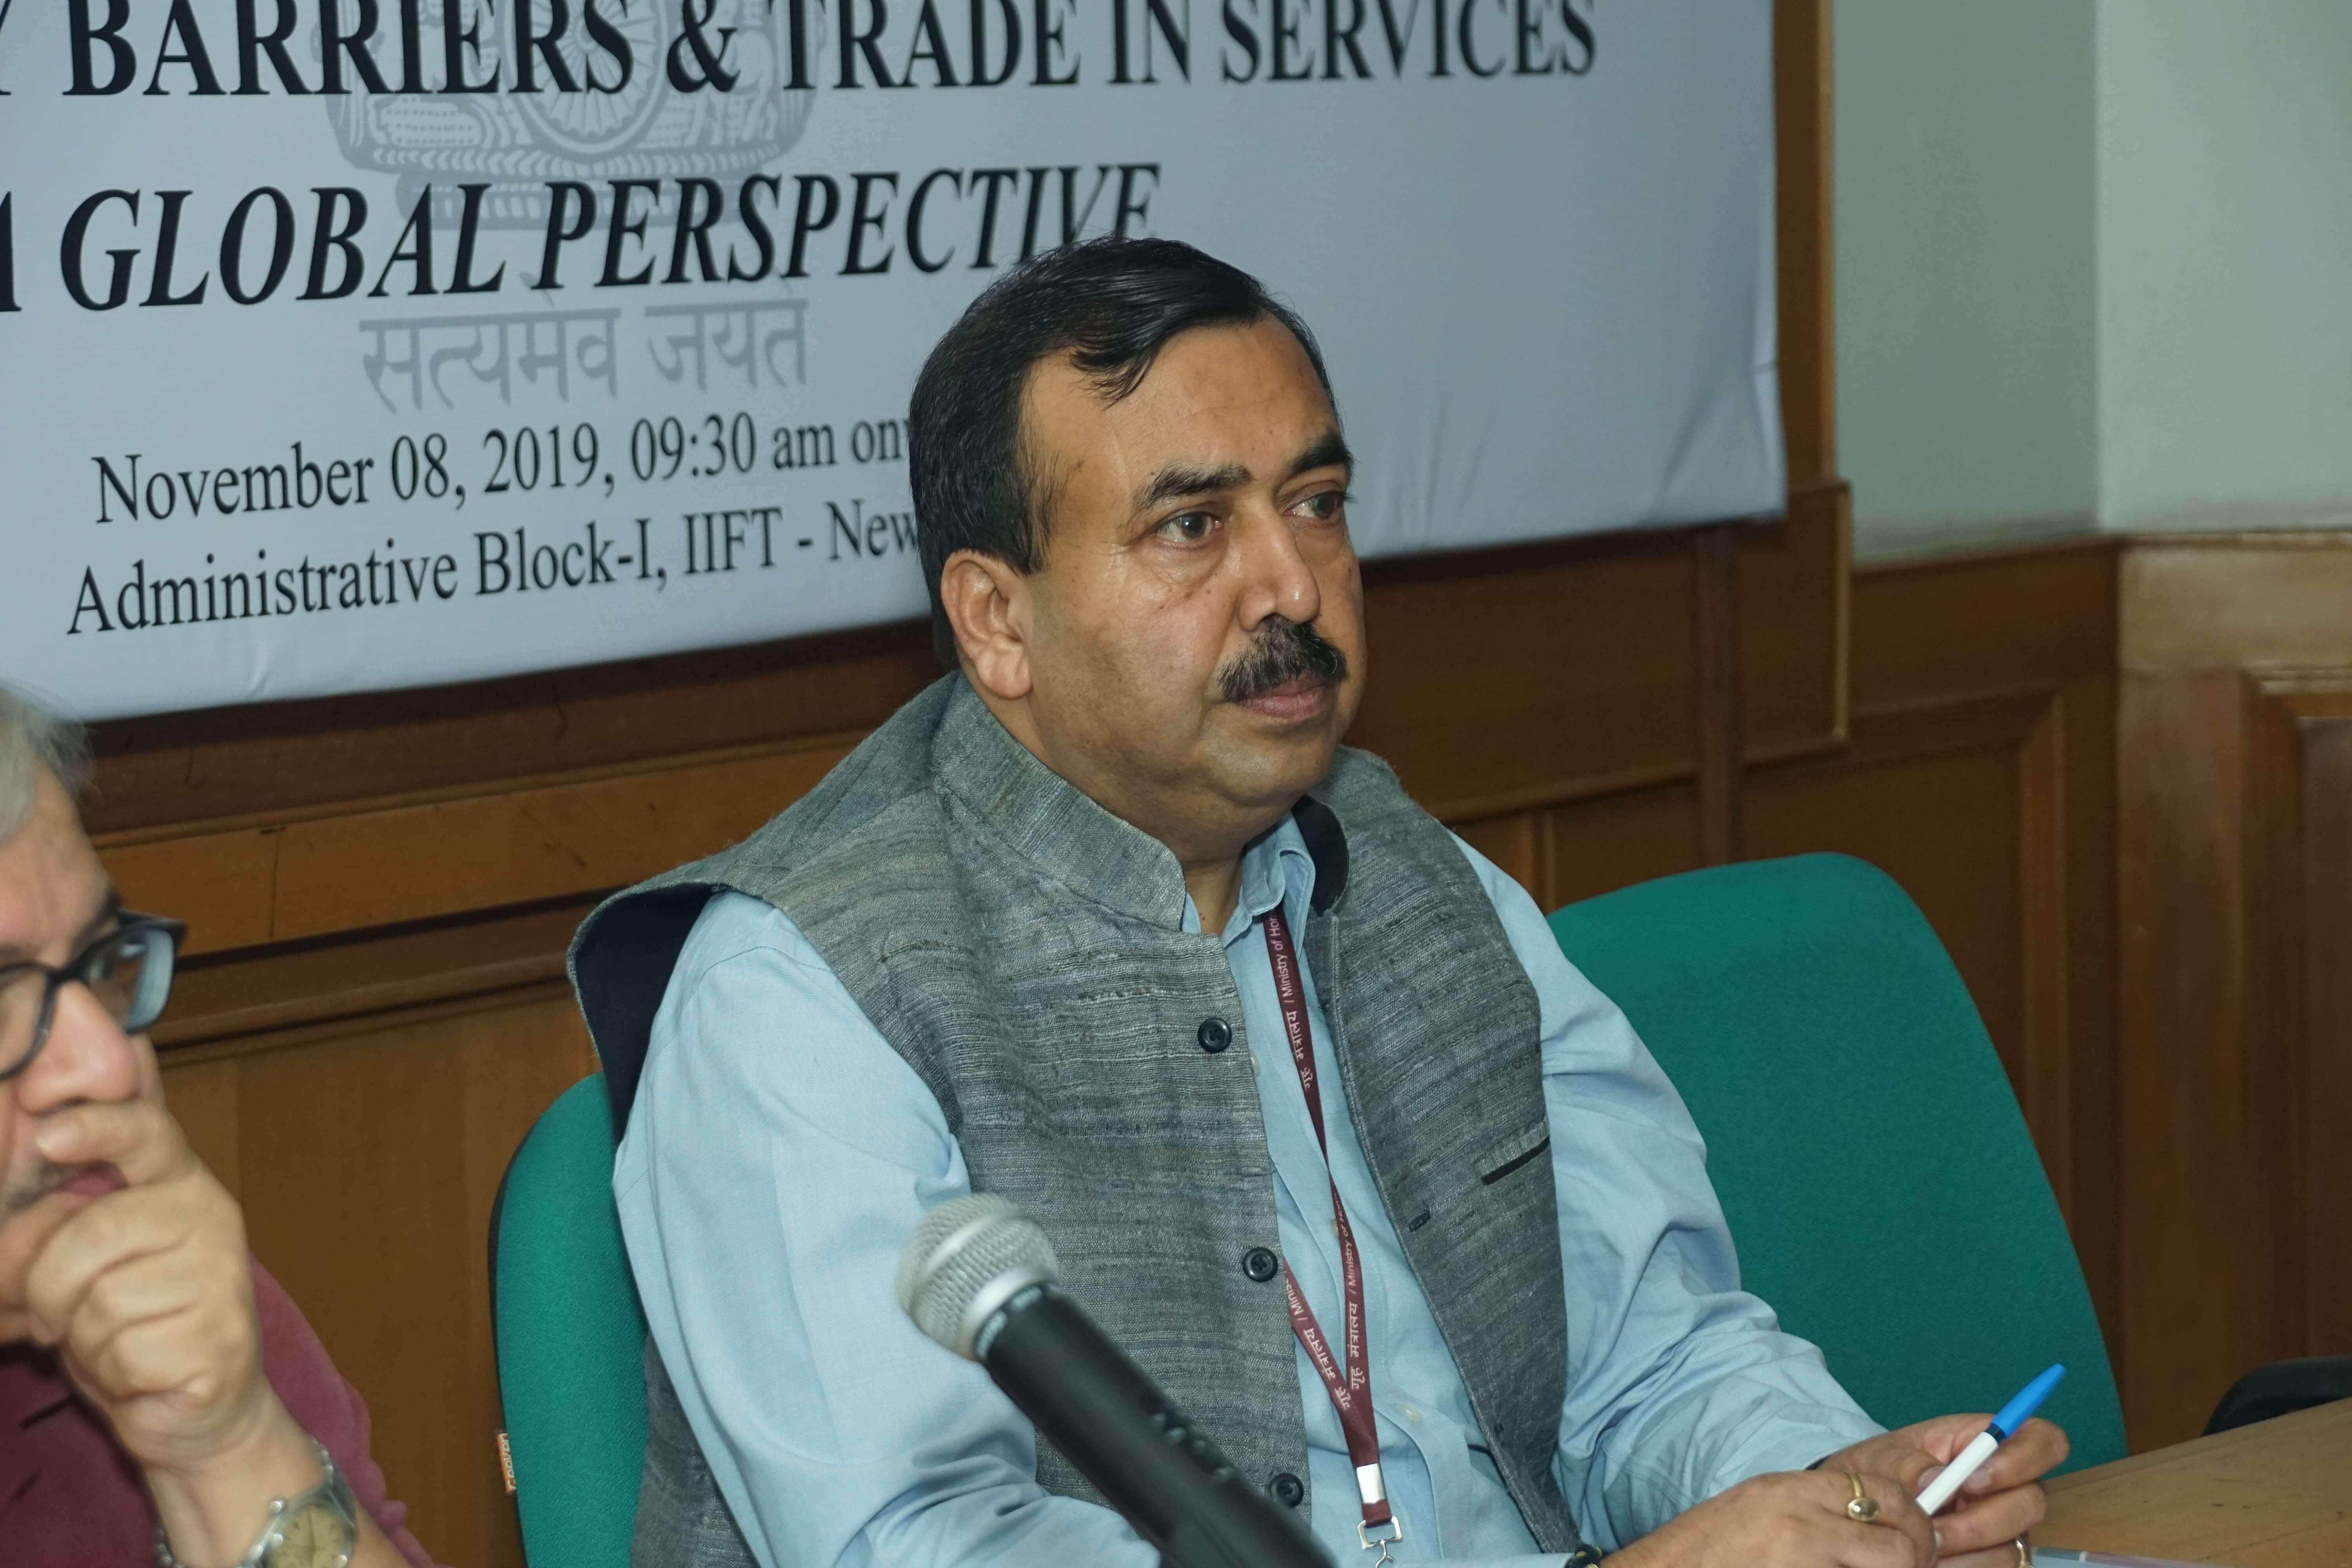 Mr. Sudhanshu Pandey, AS, DoC in the discussion on Regulatory Barriers and Trade in Services on 8th Nov 2019